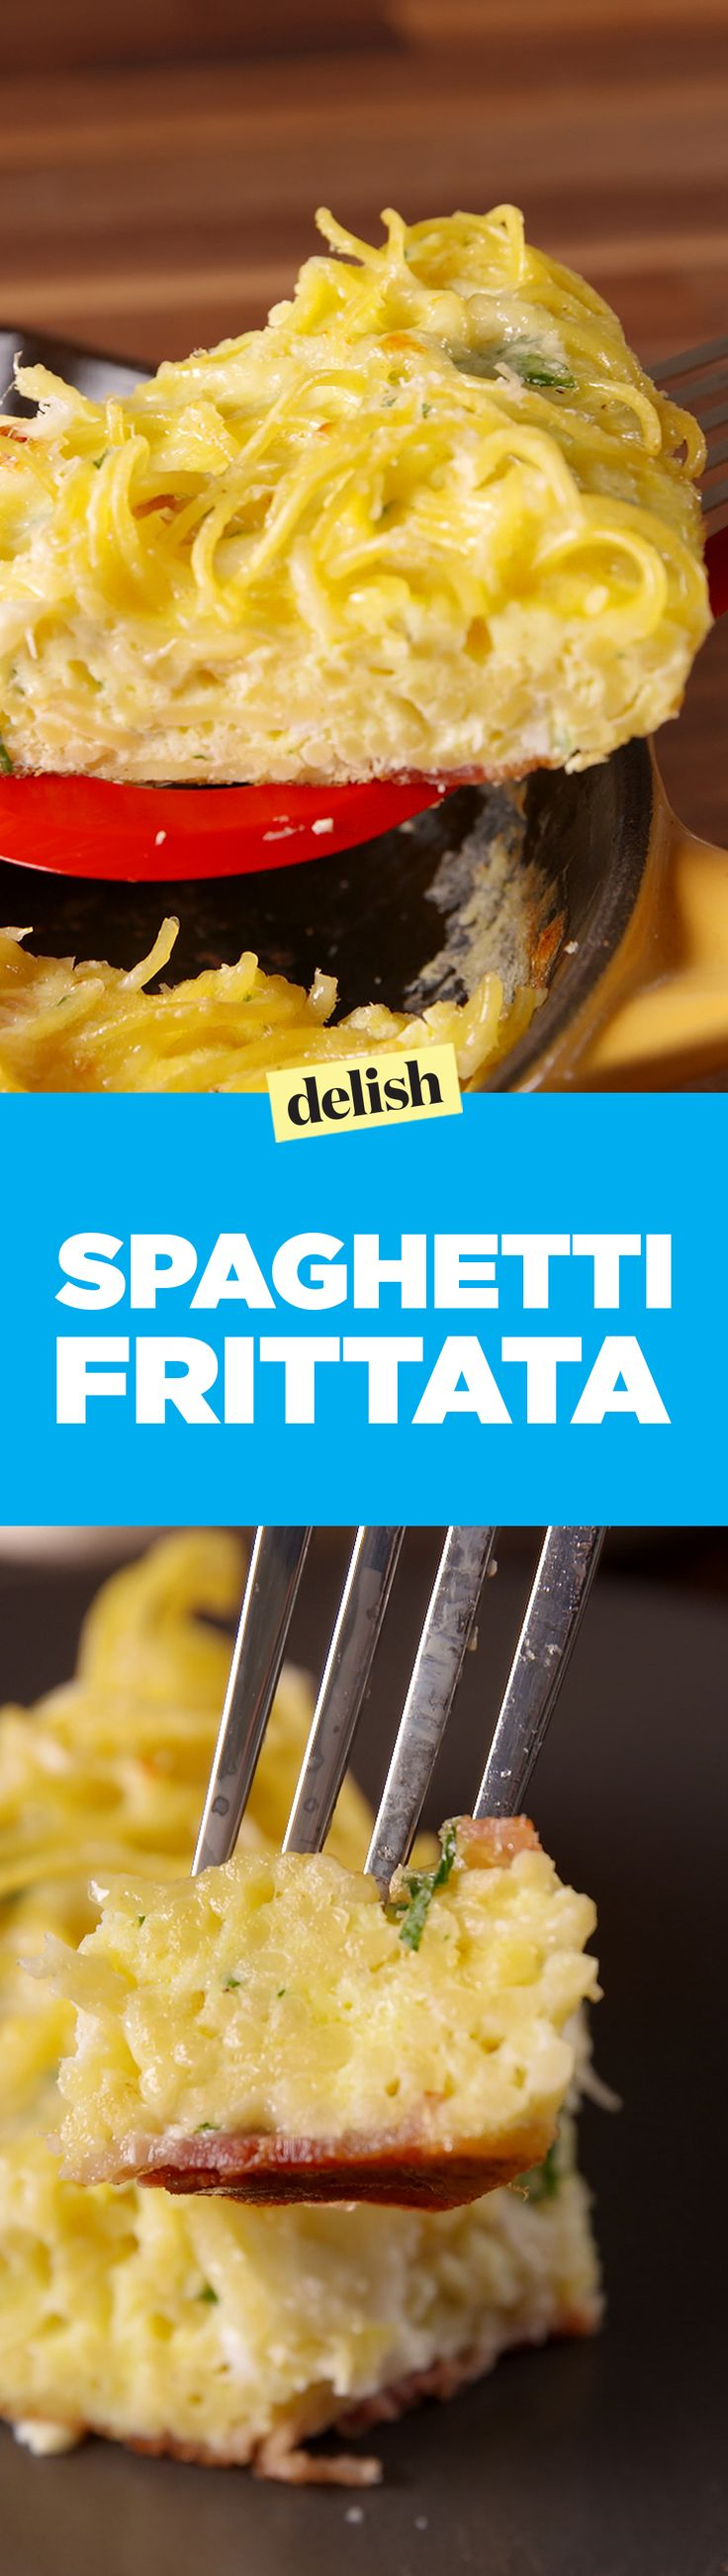 This Spaghetti Frittata pie is the best thing to do with leftover pasta. Get the recipe on Delish.com.